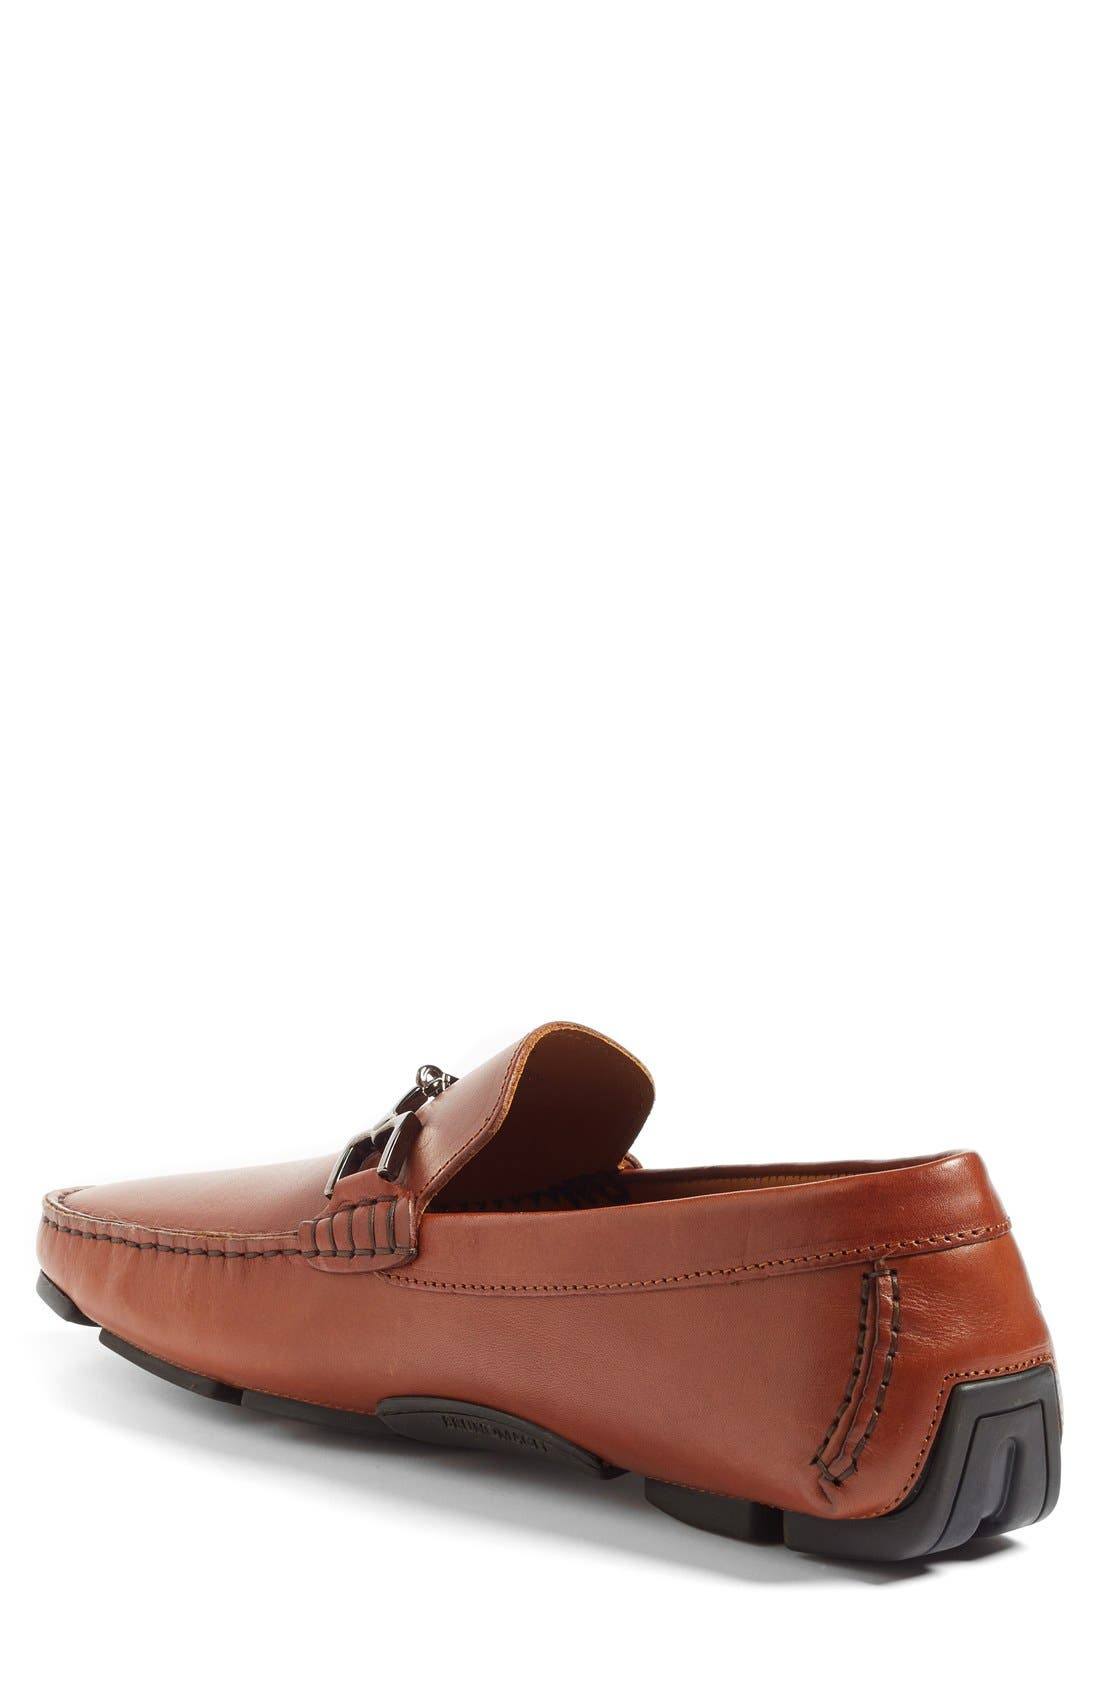 'Monza' Driving Shoe,                             Alternate thumbnail 2, color,                             Cognac Leather